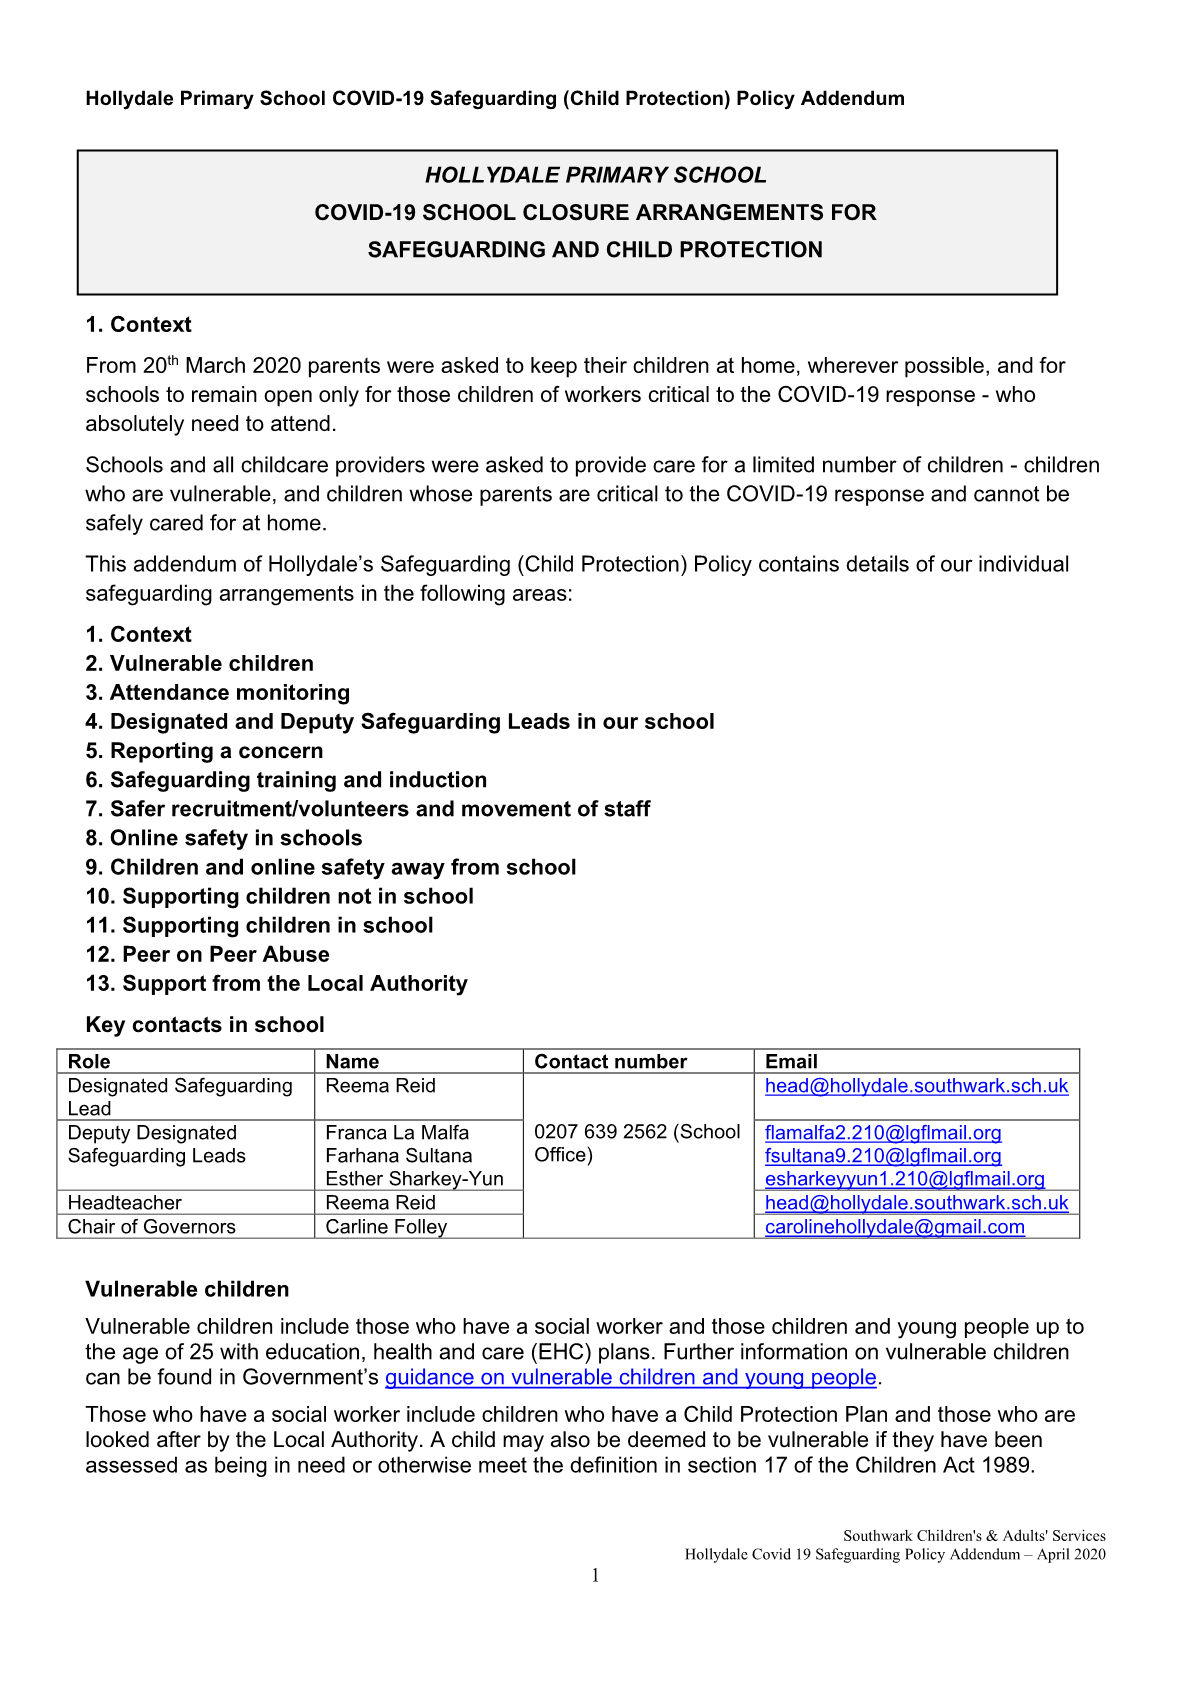 COVID-19 Safeguarding Policy